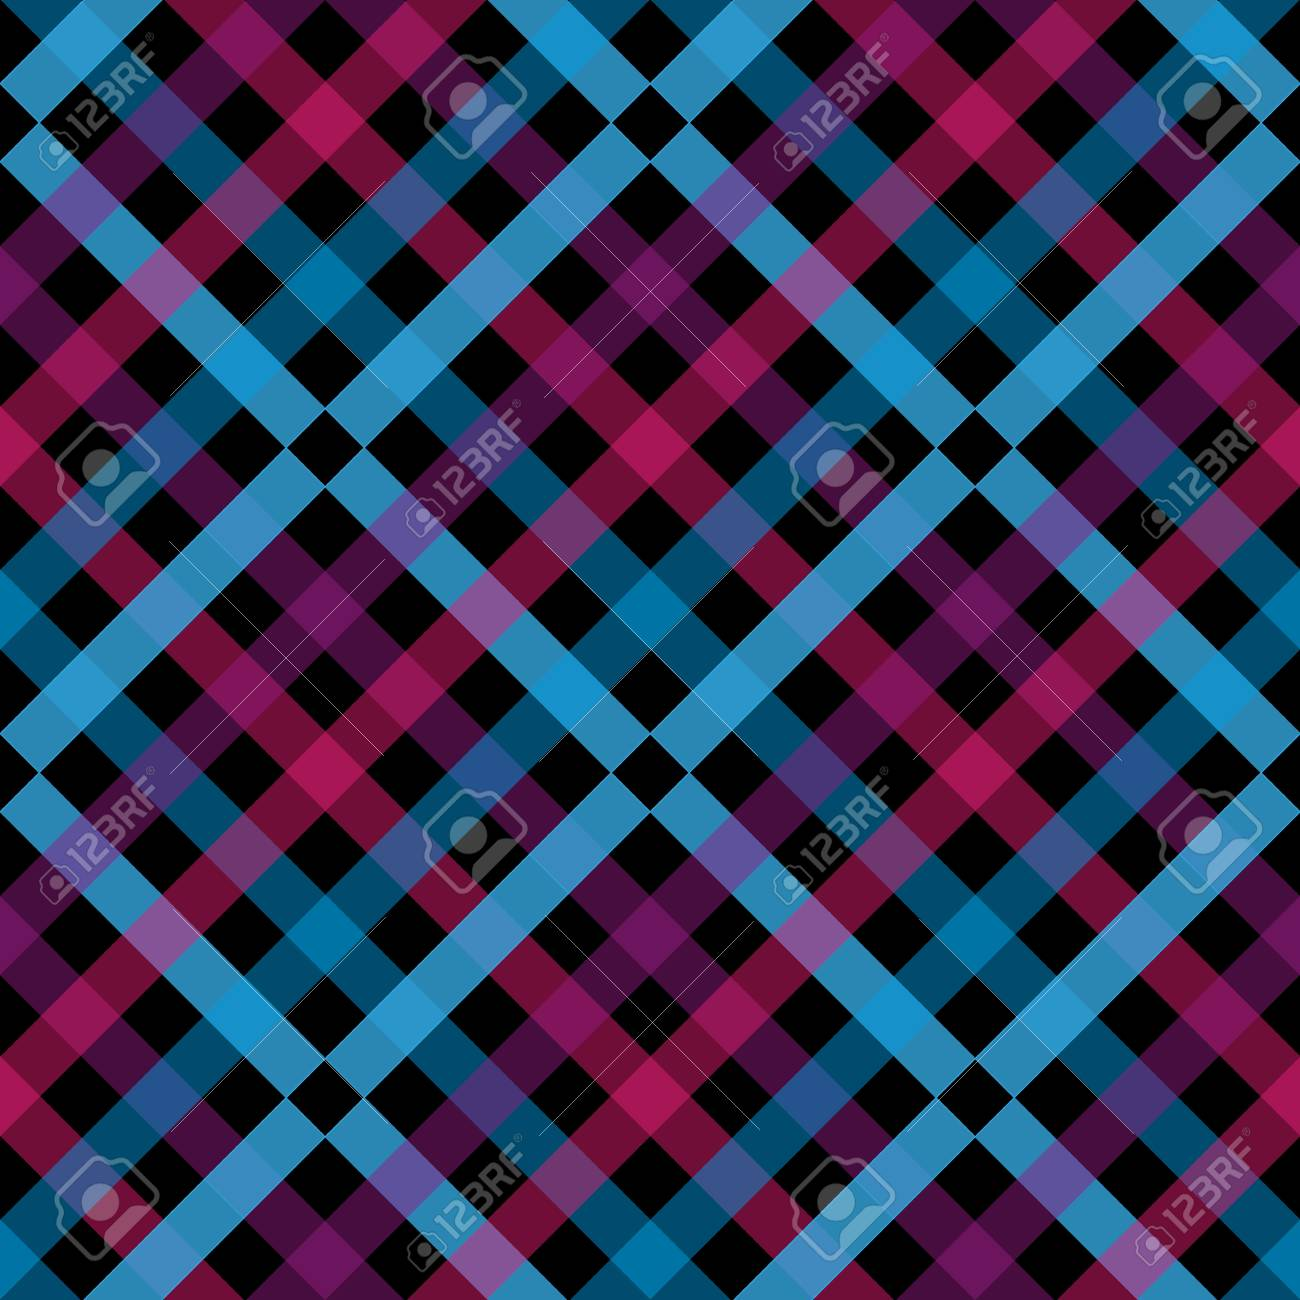 photo regarding Lite Brite Free Printable Patterns named Seamless tartan plaid routine. Checkered cloth texture print..